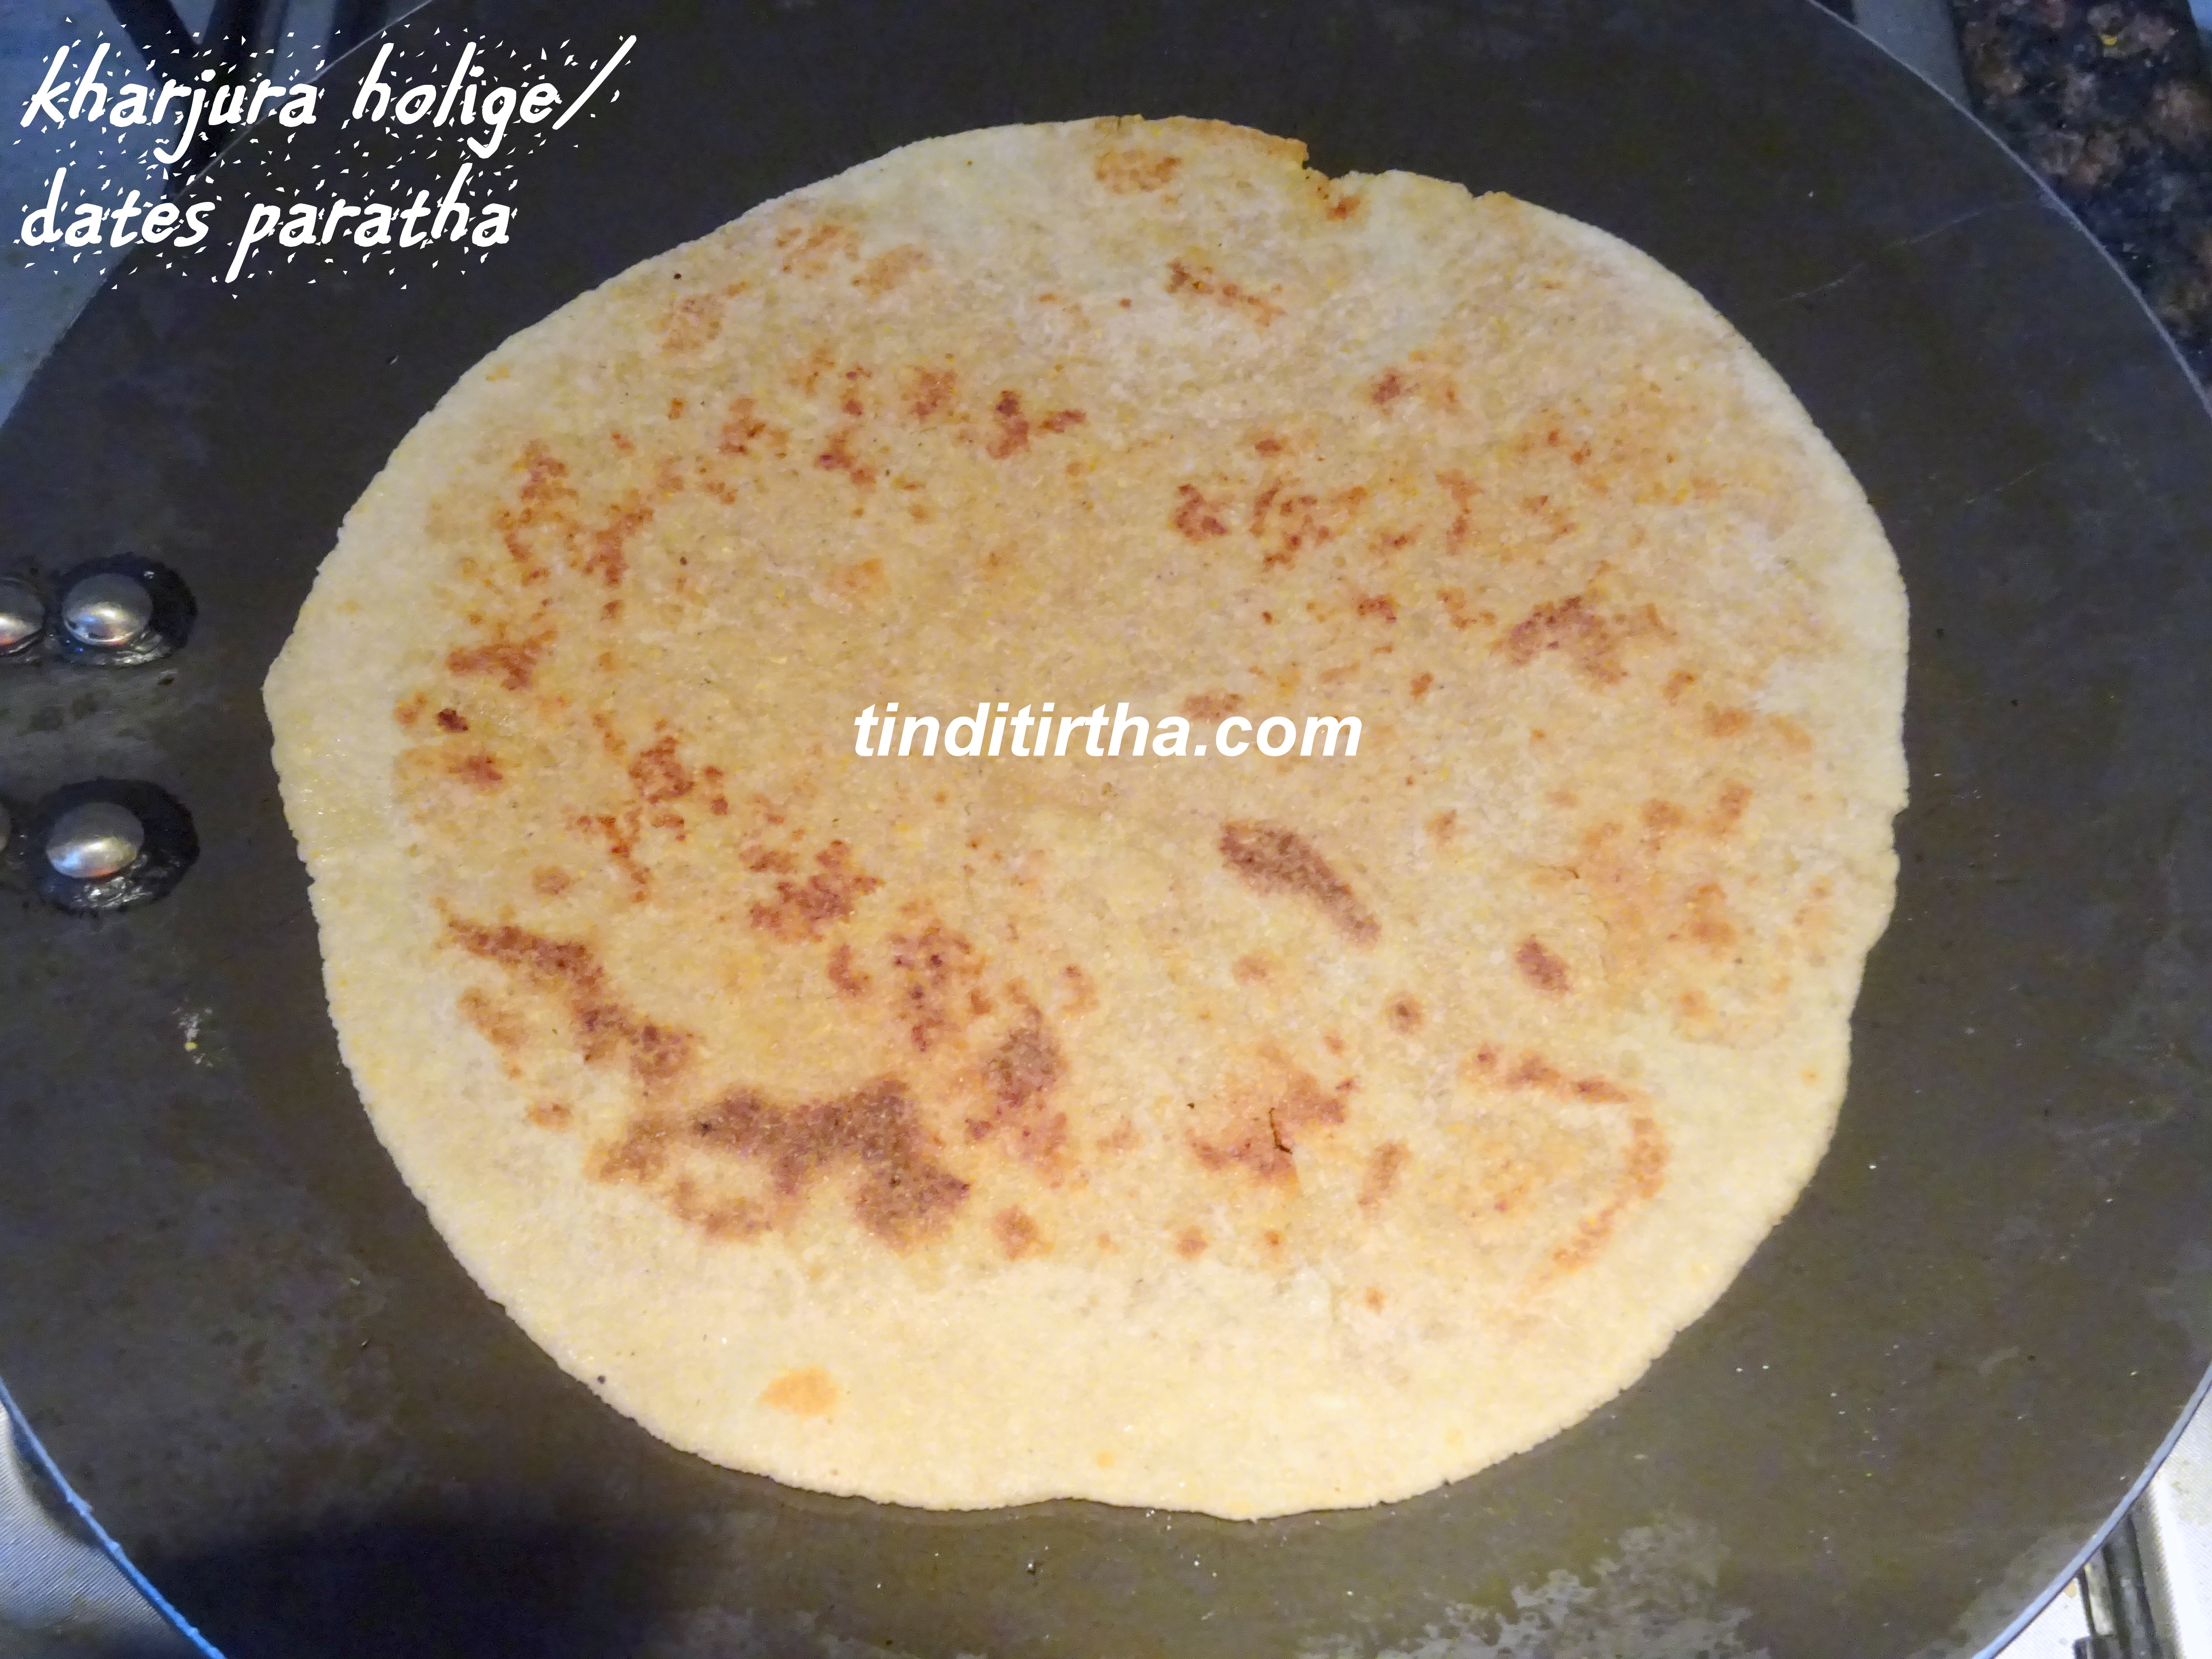 DATES AND SESAME SWEET PARATHA/ KHARJURA HOLIGE/ KHAJUR KI POORANPOLI